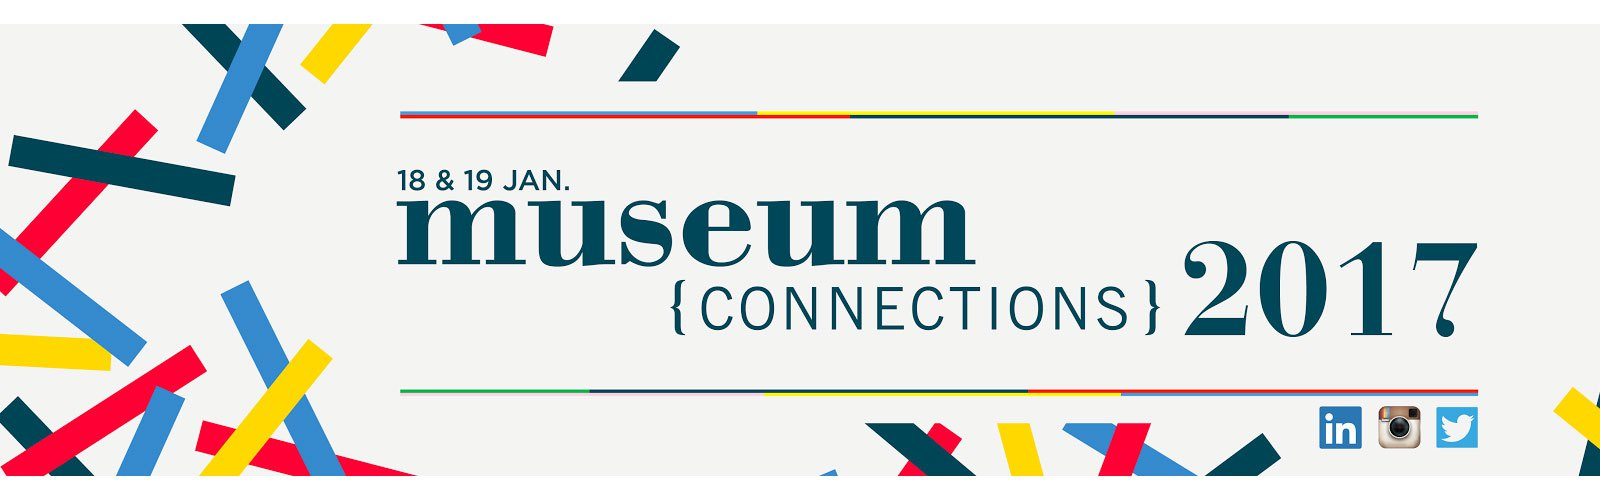 Museum connections 2017